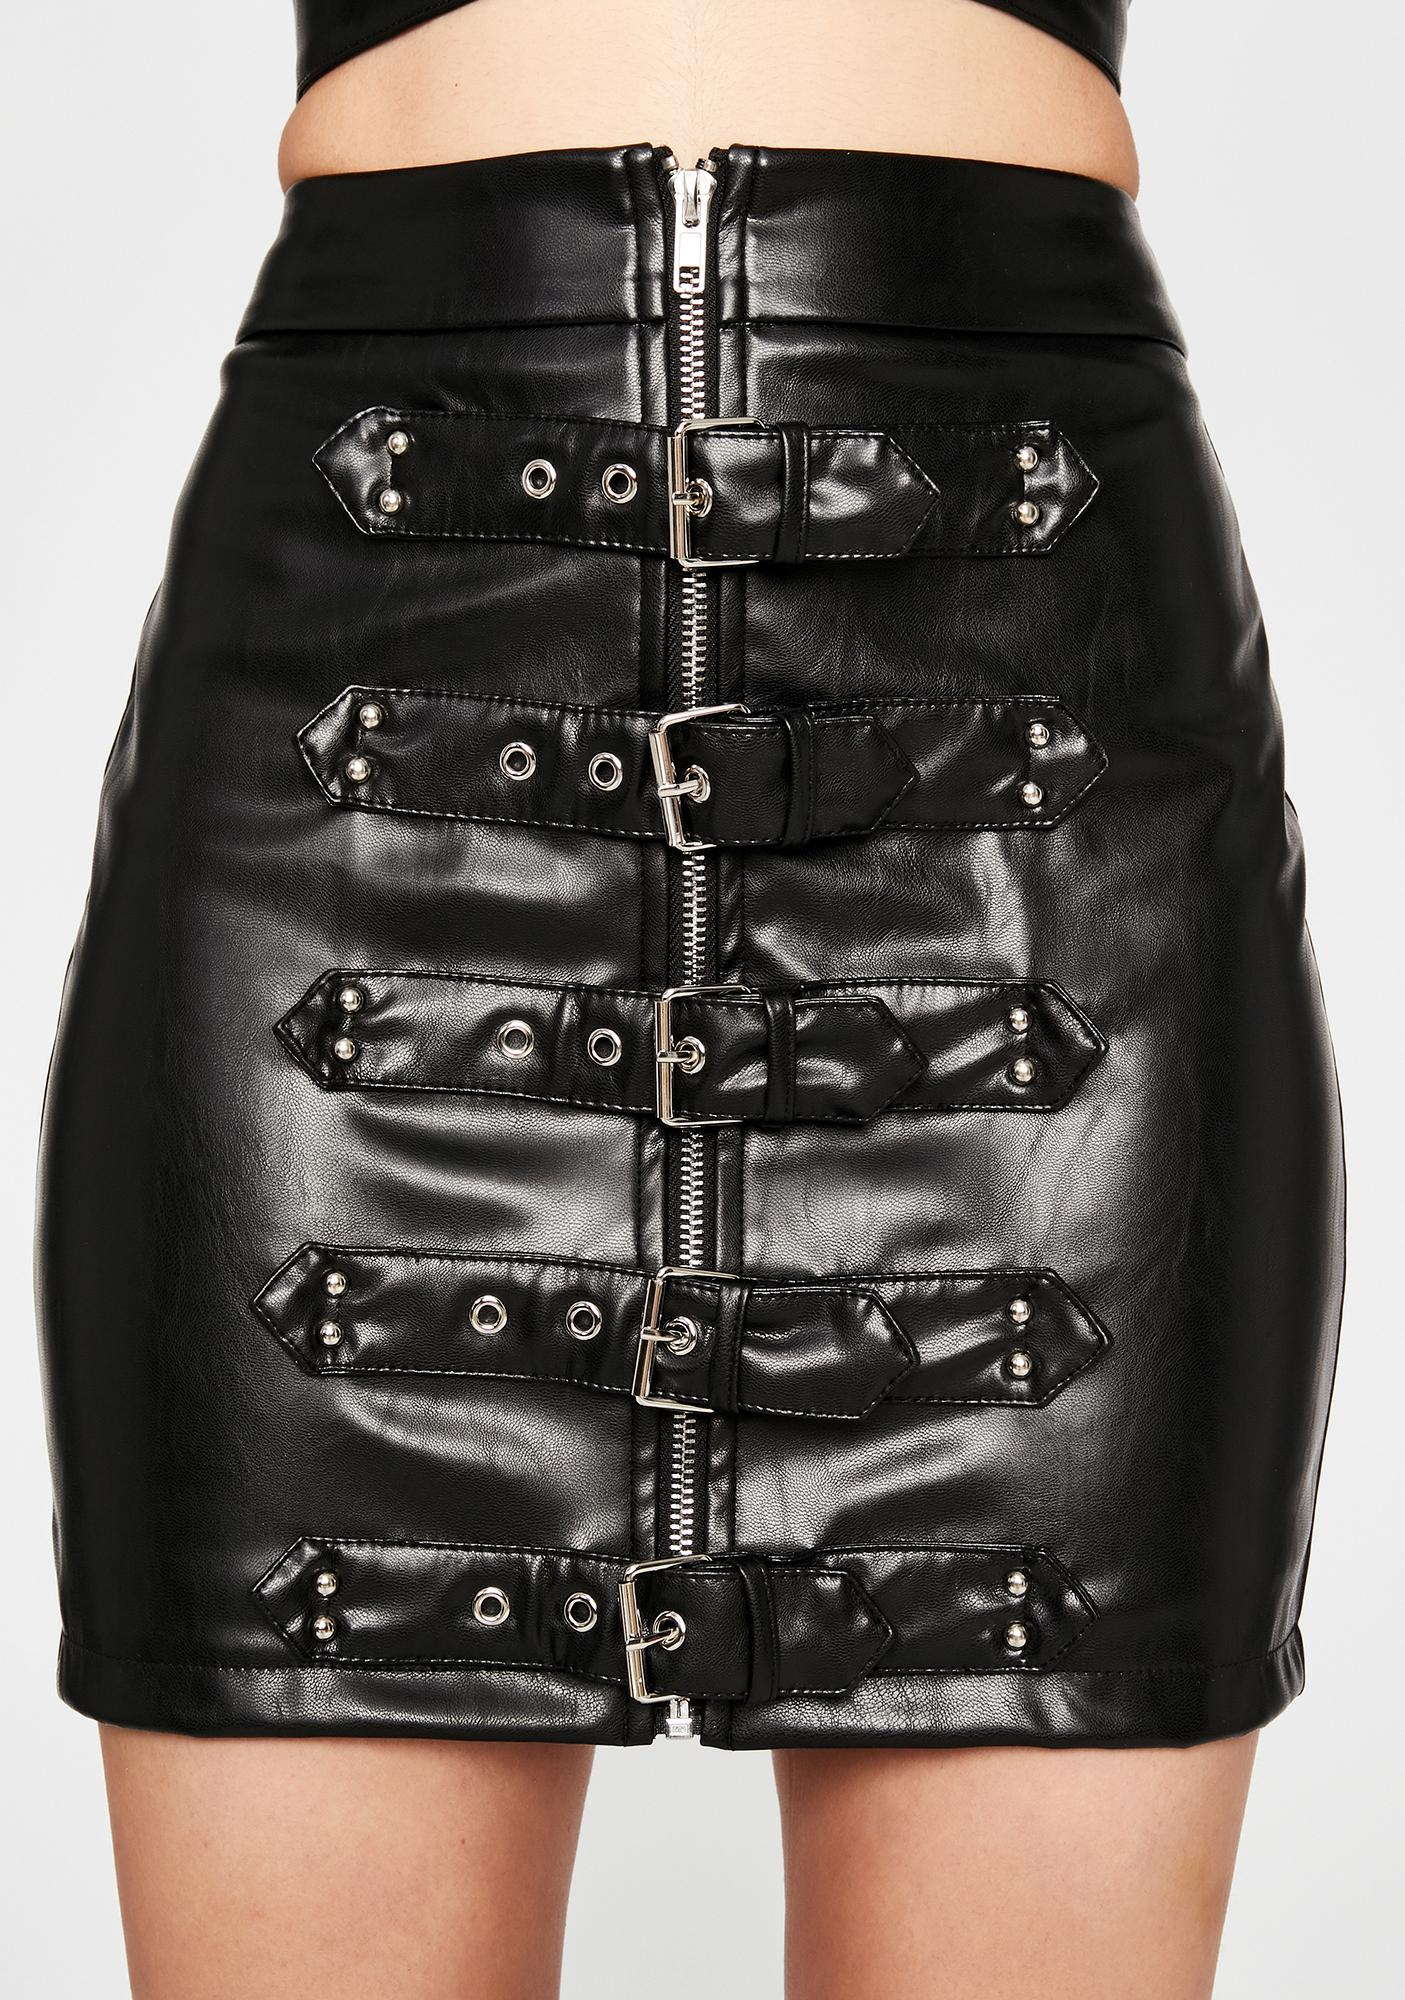 Obey My Command Buckle Skirt